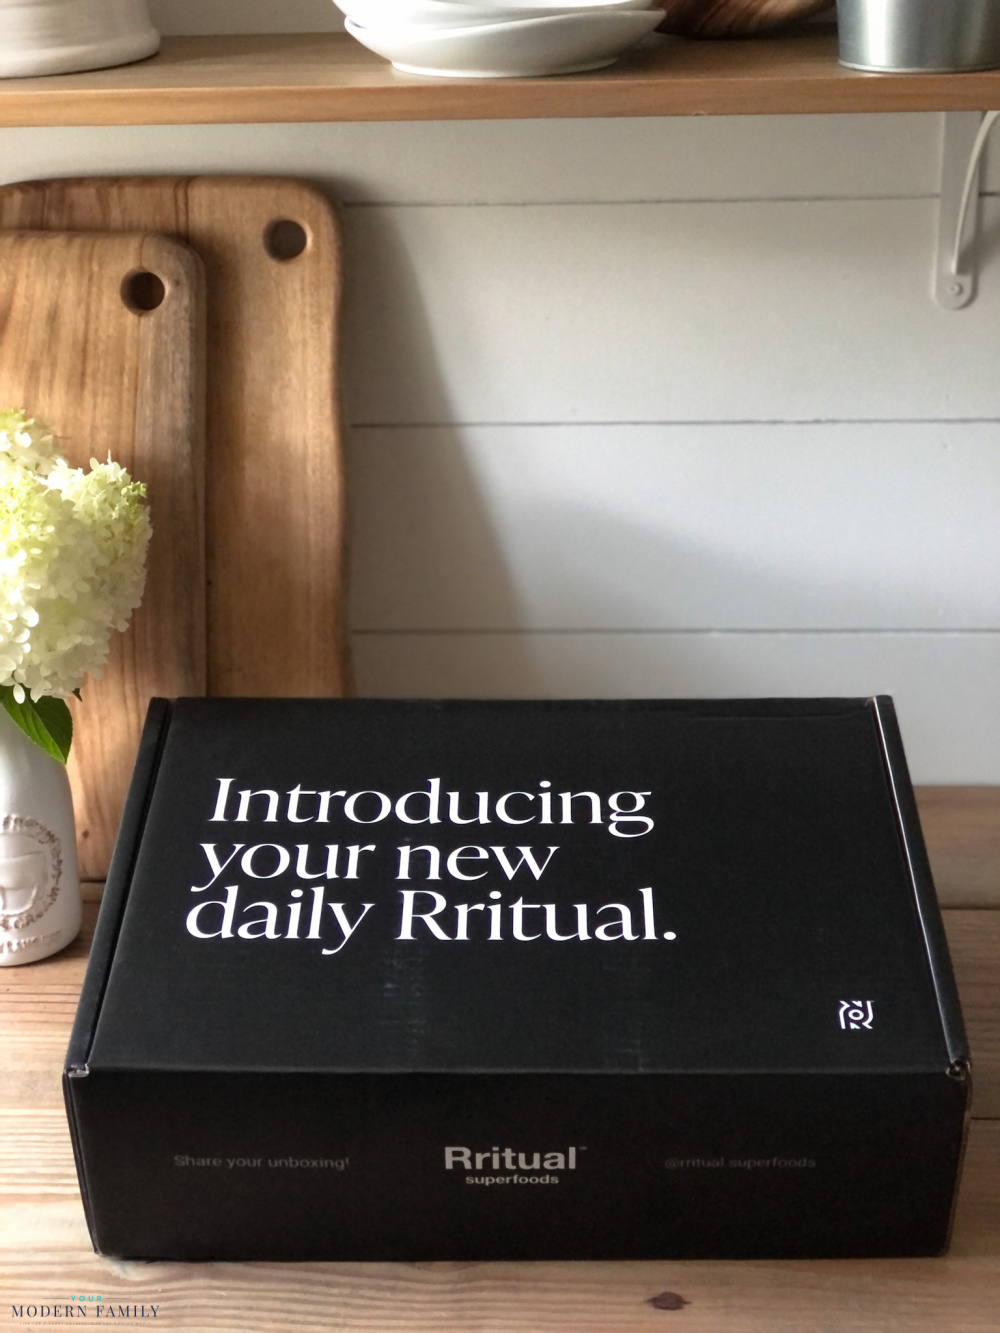 Box of Rritual plant-based superfoods sitting on a table